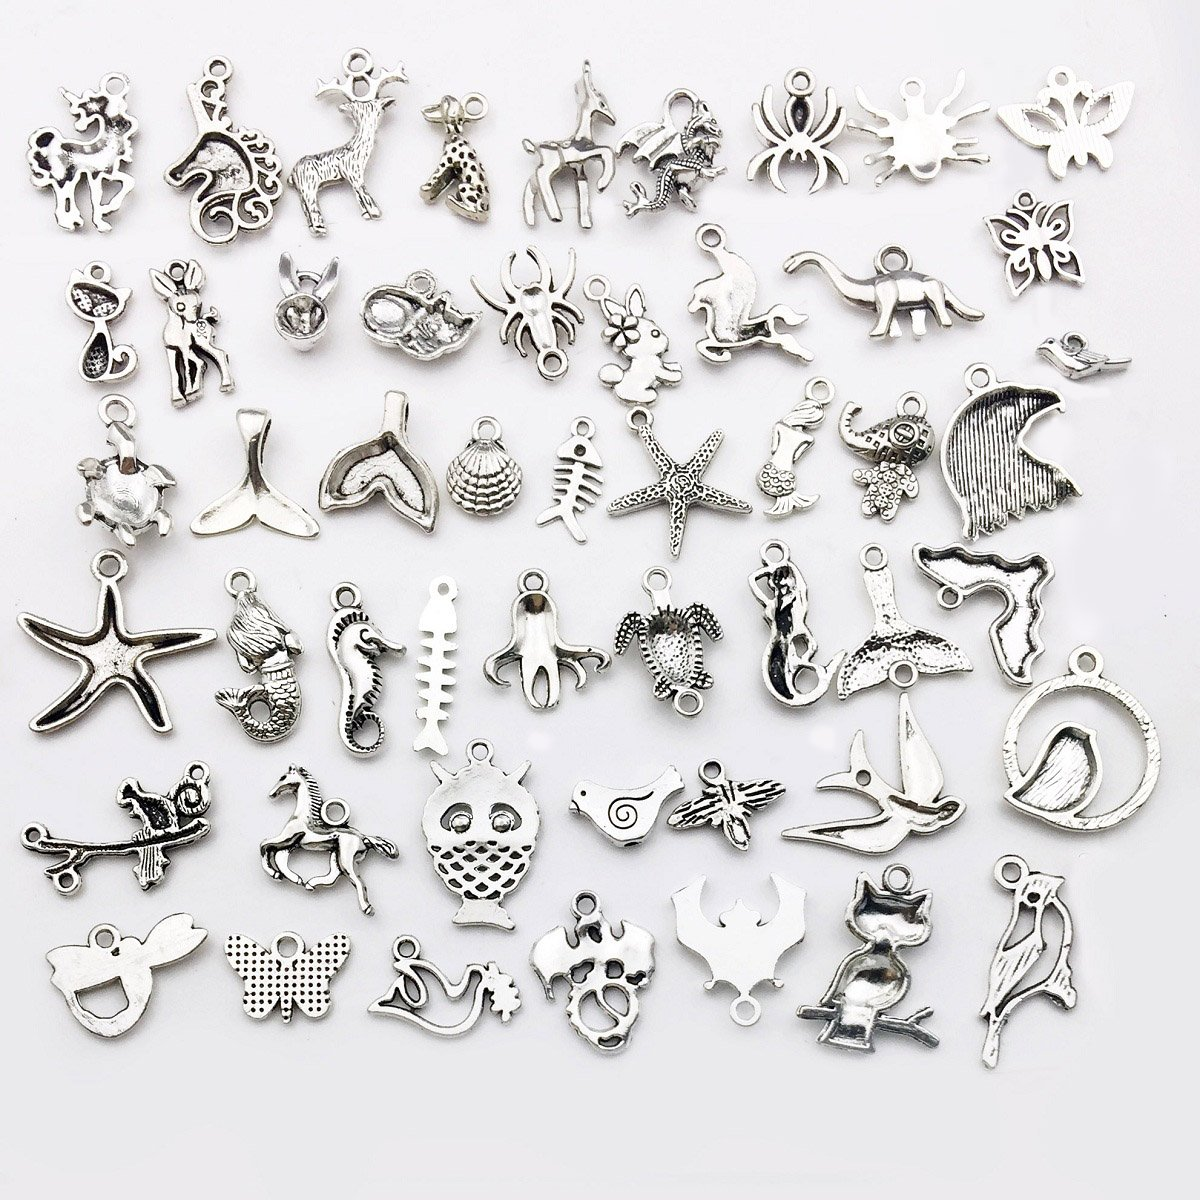 Craft Supplies Small Antique Silver Fly Animals Charms Pendants Crafting About 100pcs Fly Animal Charms iloveDIYbeads 100g Jewelry Findings Making Accessory DIY Necklace Bracelet